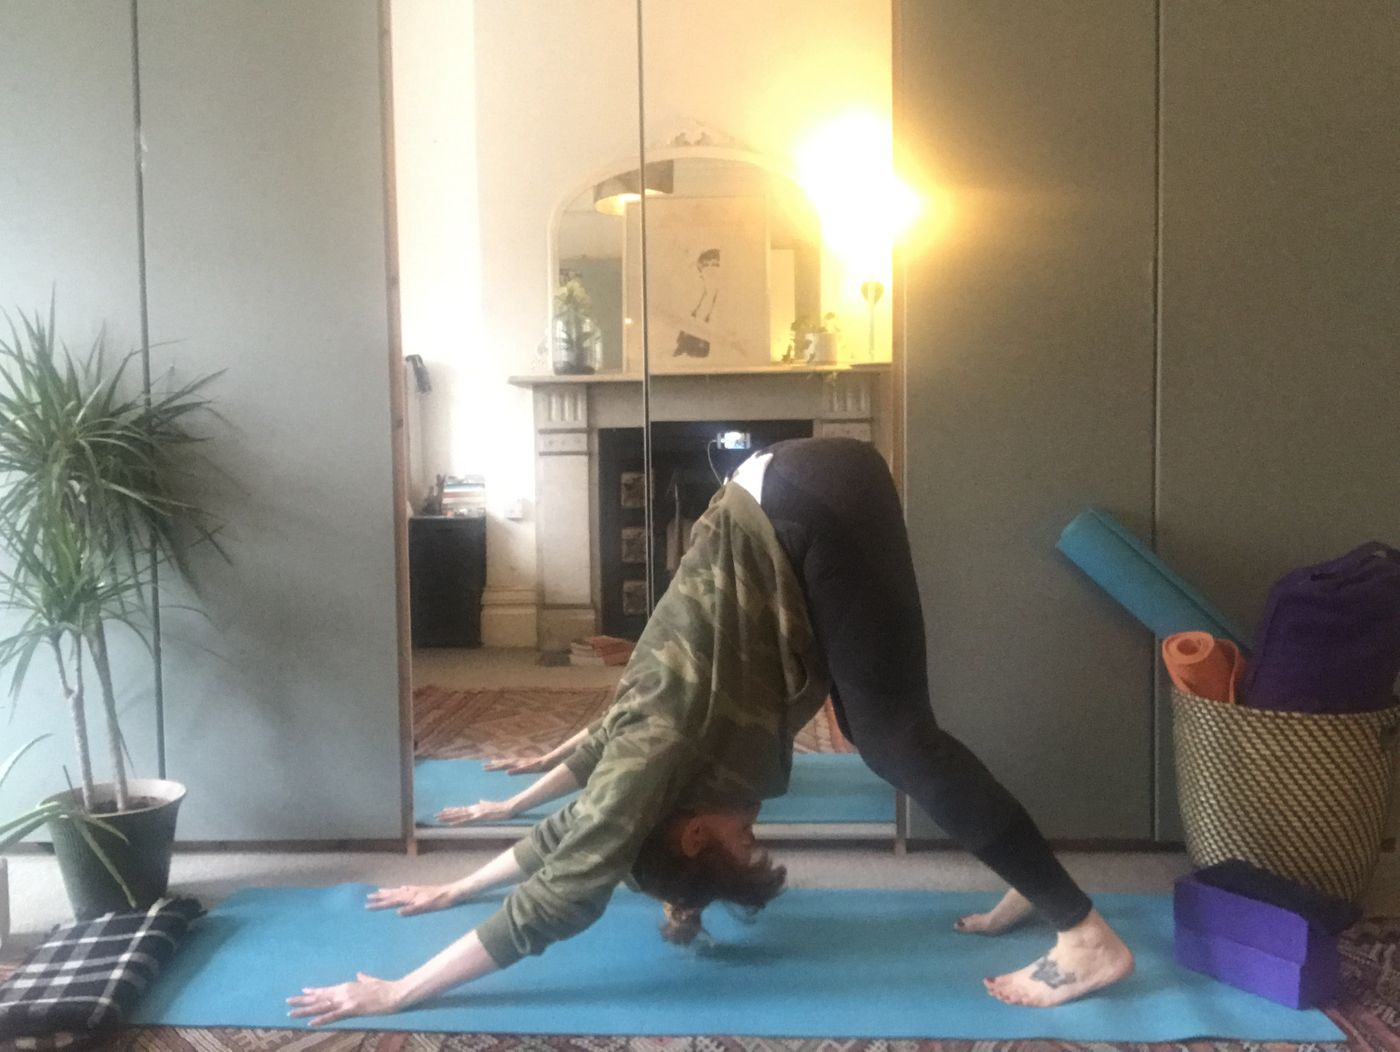 This Friday's Goddess Flow Vinyasa class has some good old fashioned classic asanas that are as familiar and comforting as sticky toffee pudding, no stress just movement.  https://bua.fit/class/ZOuN7ukEXDxM